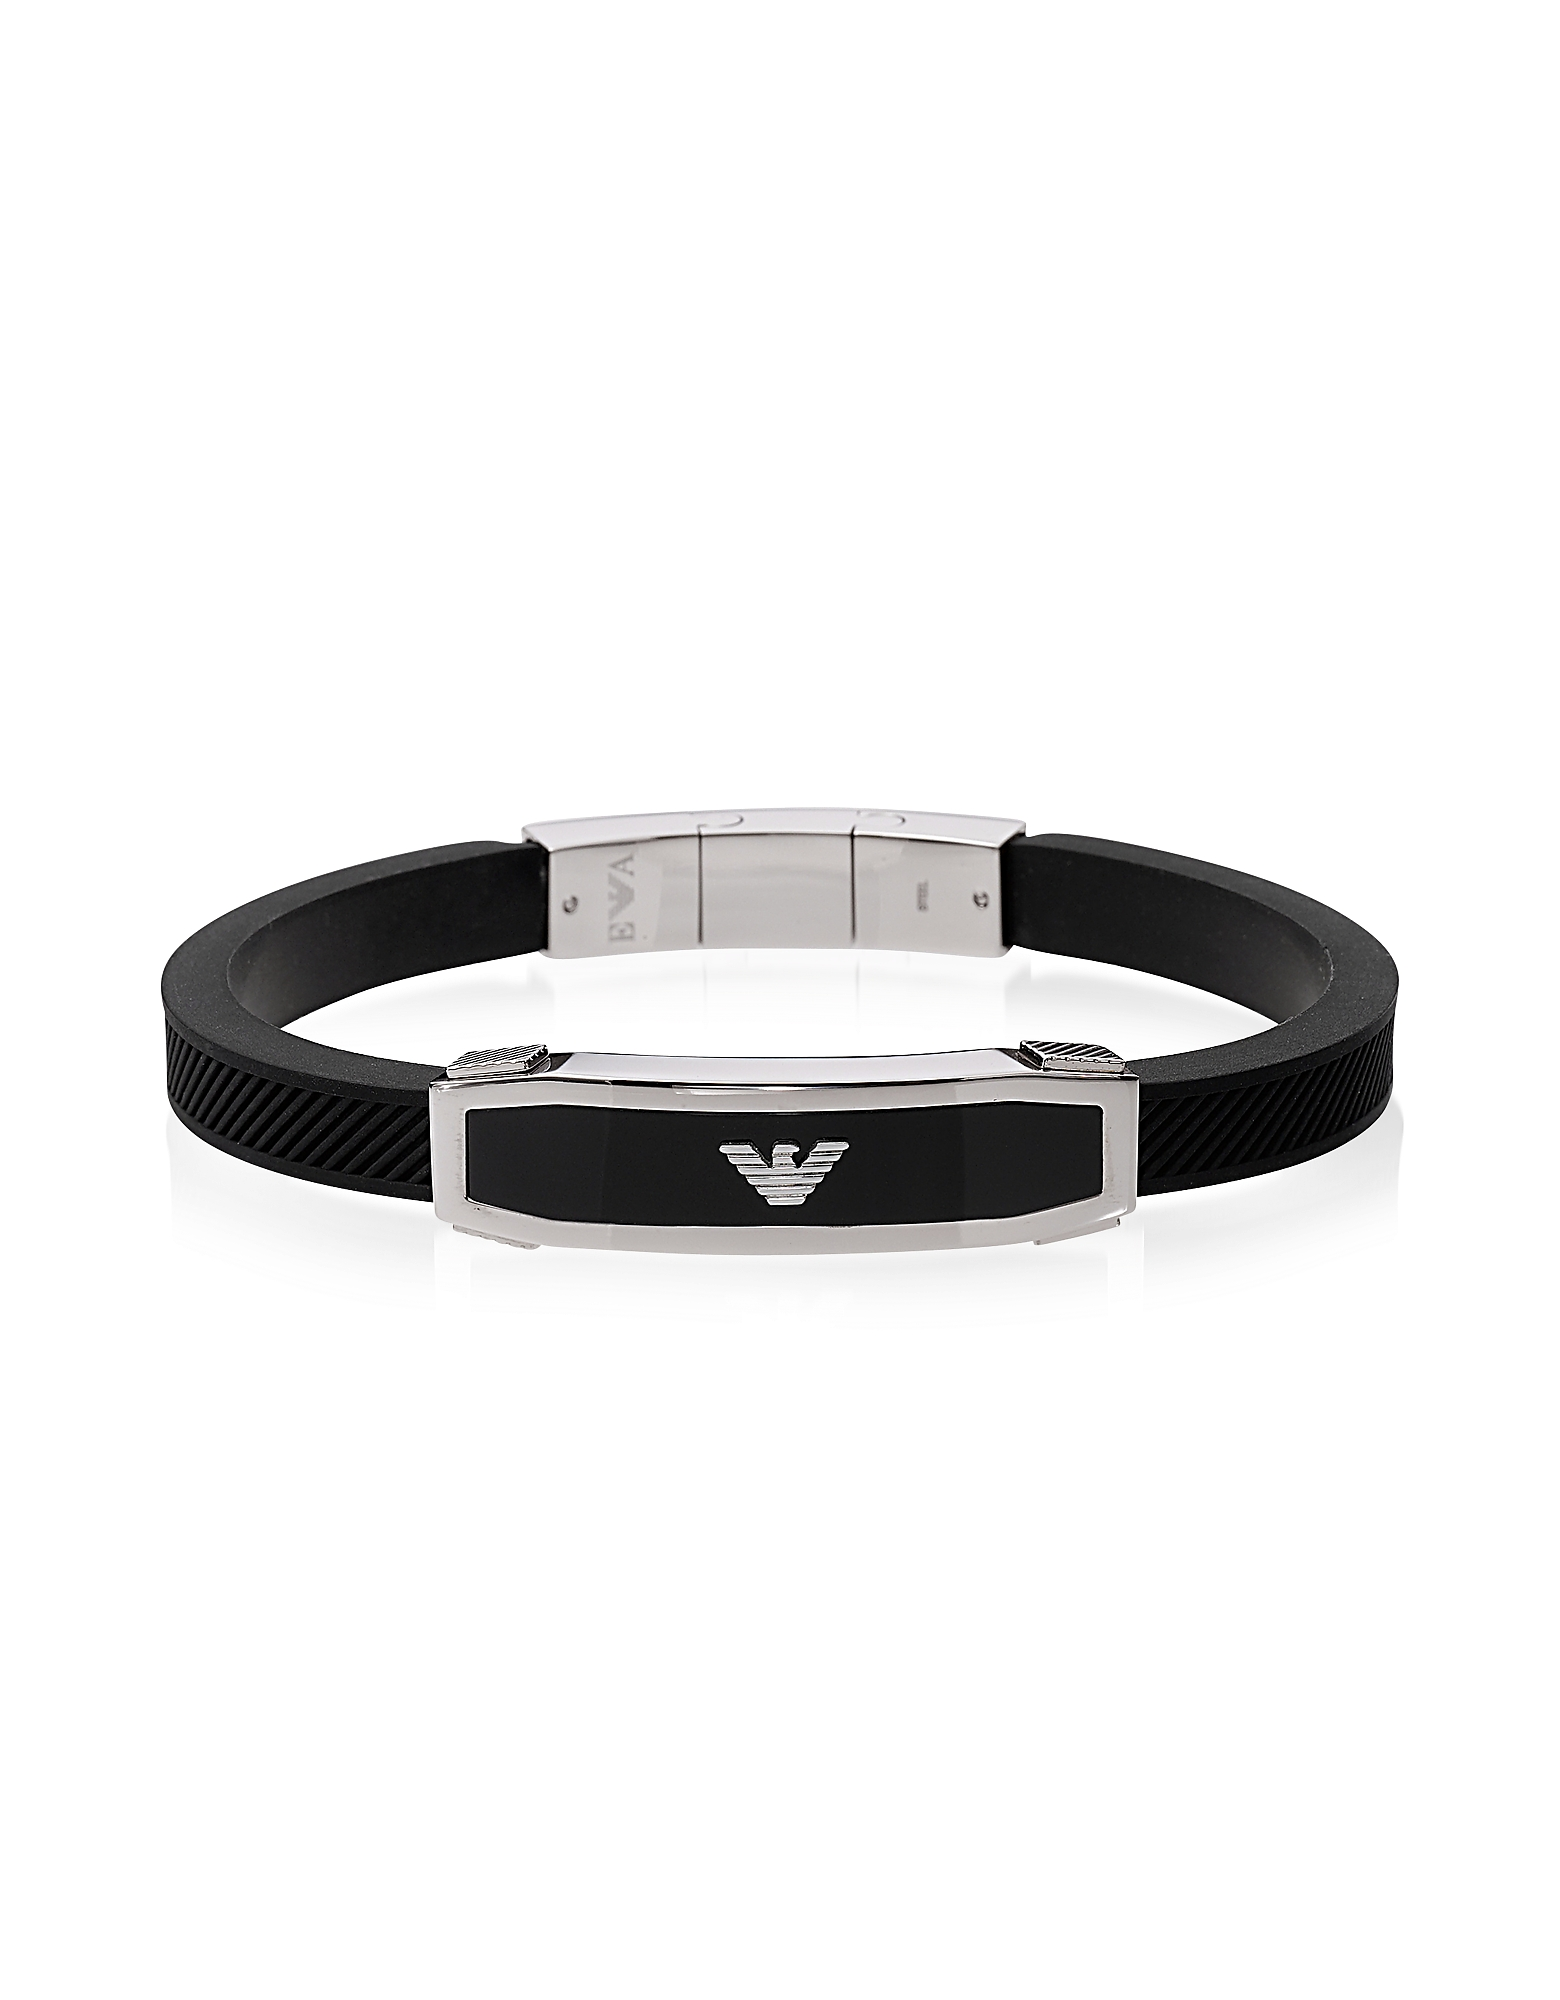 Stainless Steel and Black Rubber Men's Bracelet от Forzieri.com INT